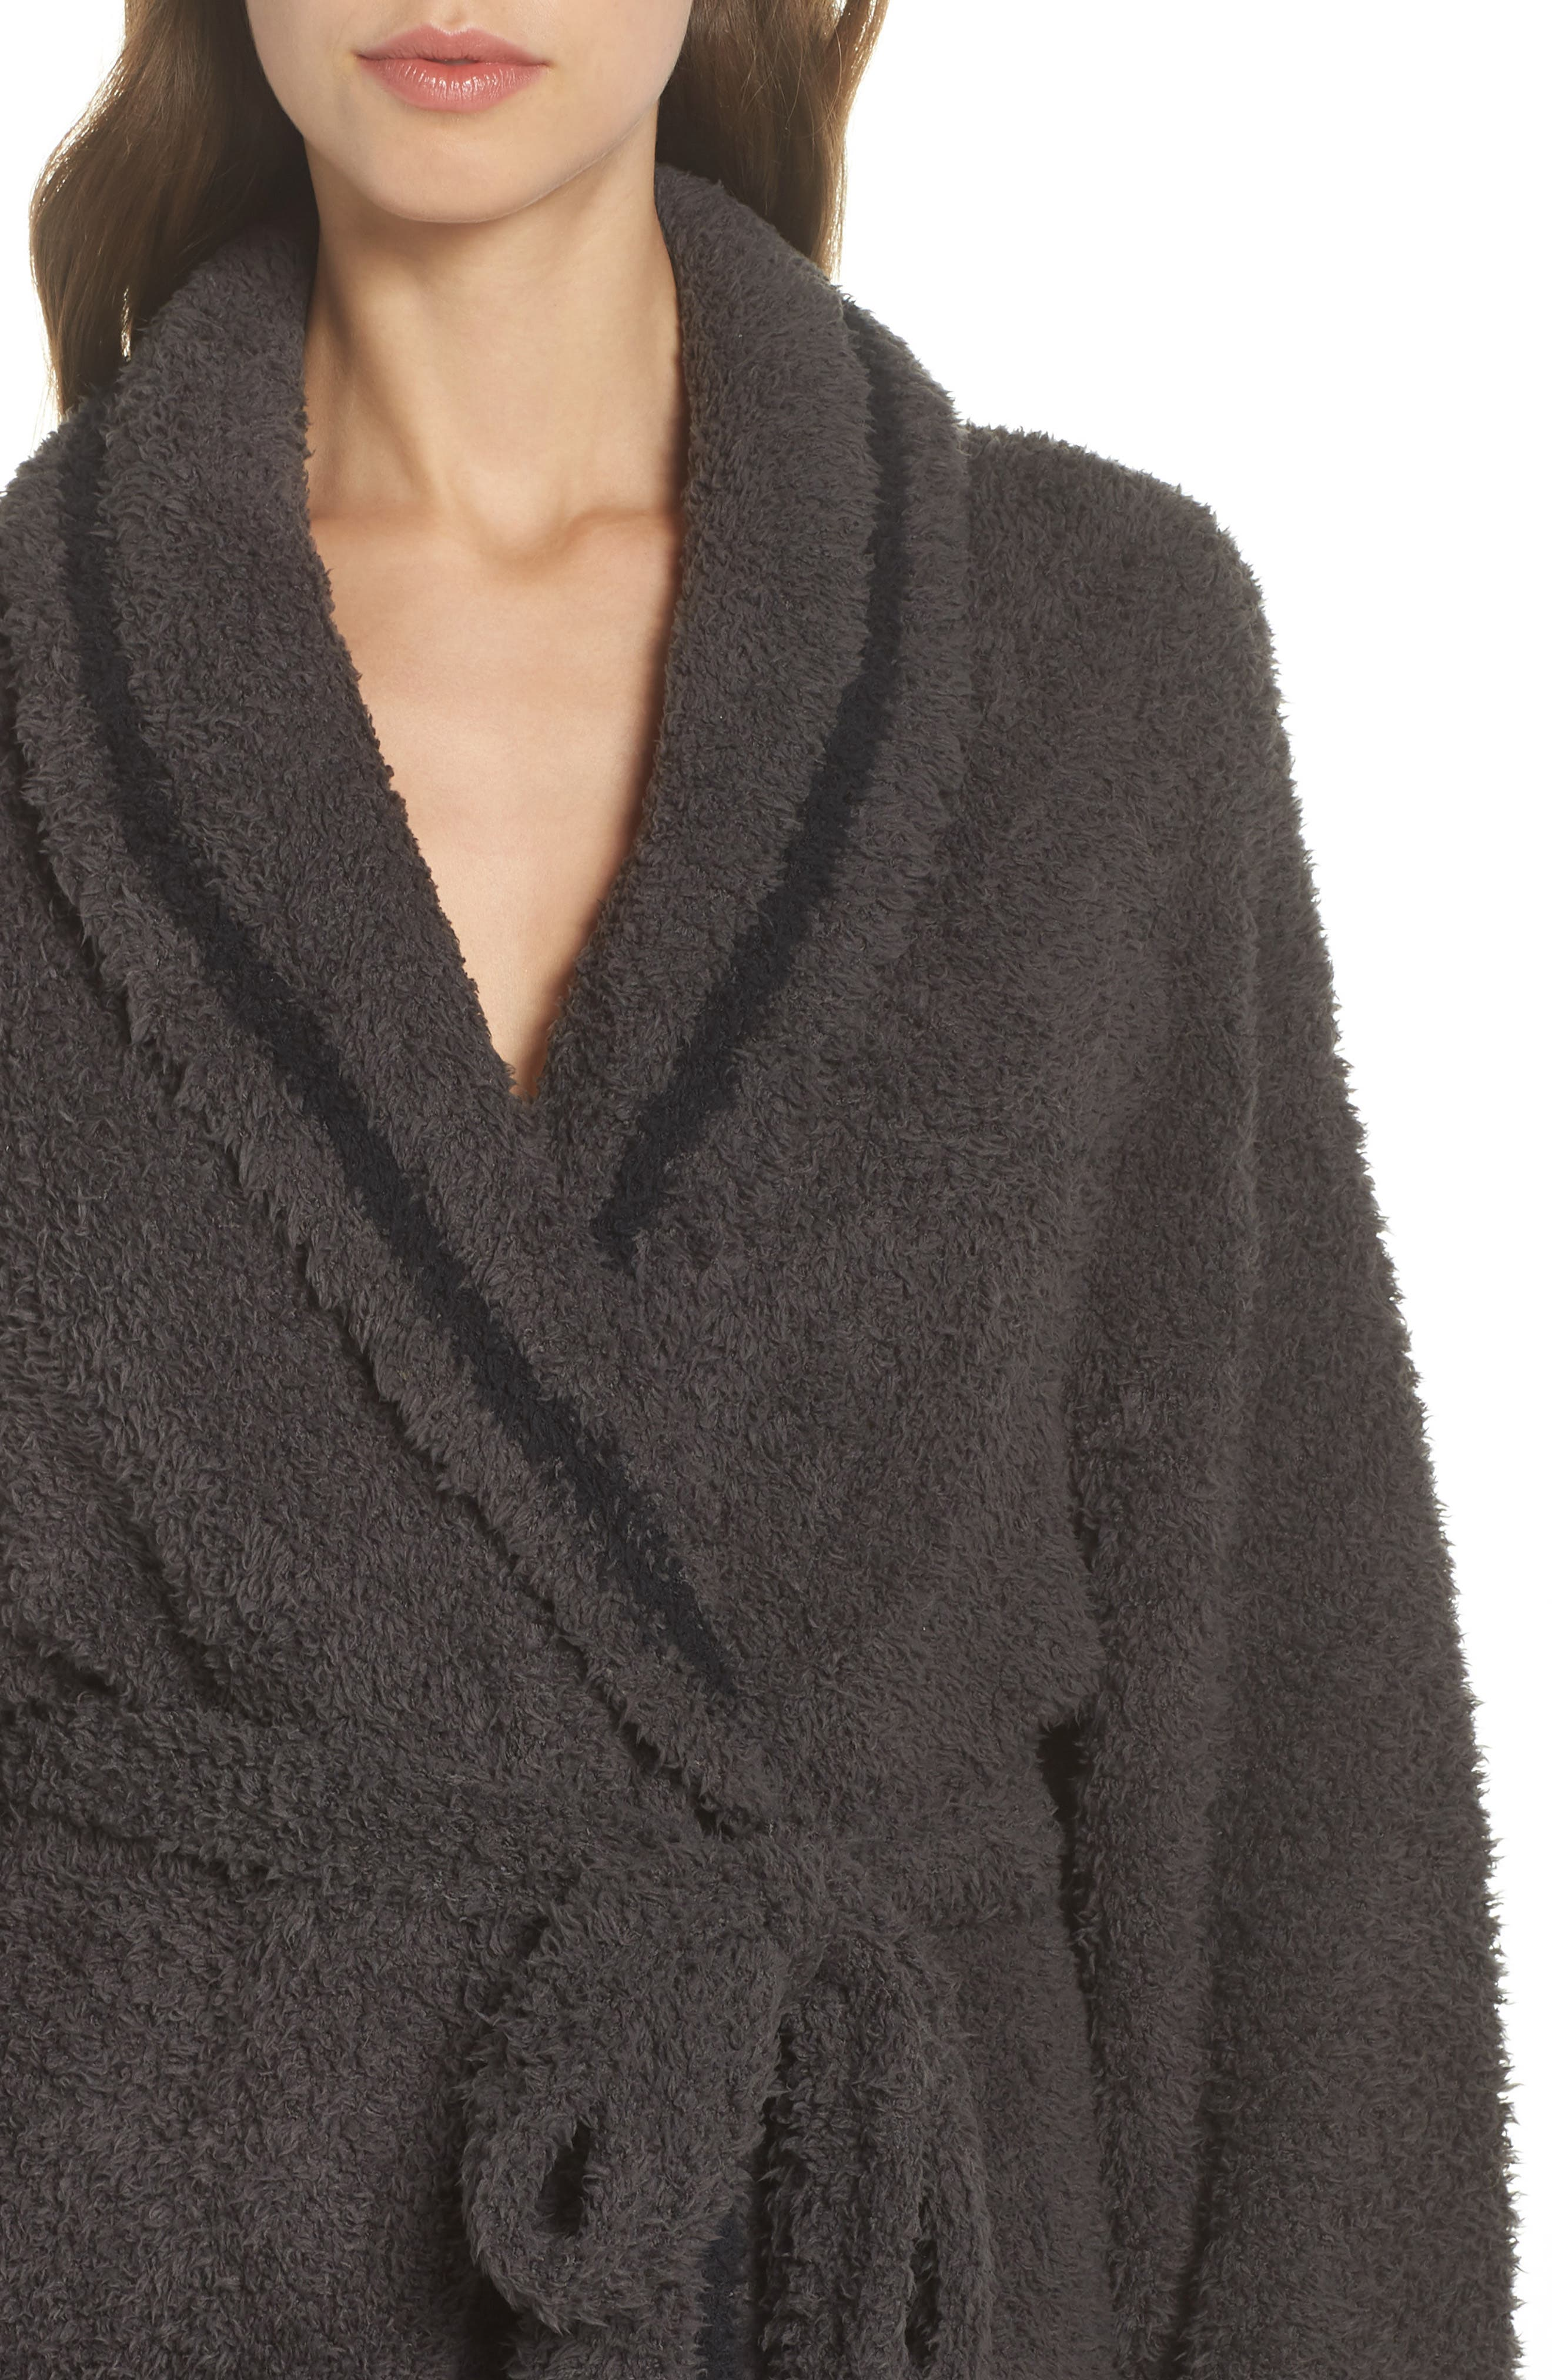 x Disney Classic Series CozyChic<sup>®</sup> Robe,                             Alternate thumbnail 4, color,                             CARBON/ BLACK